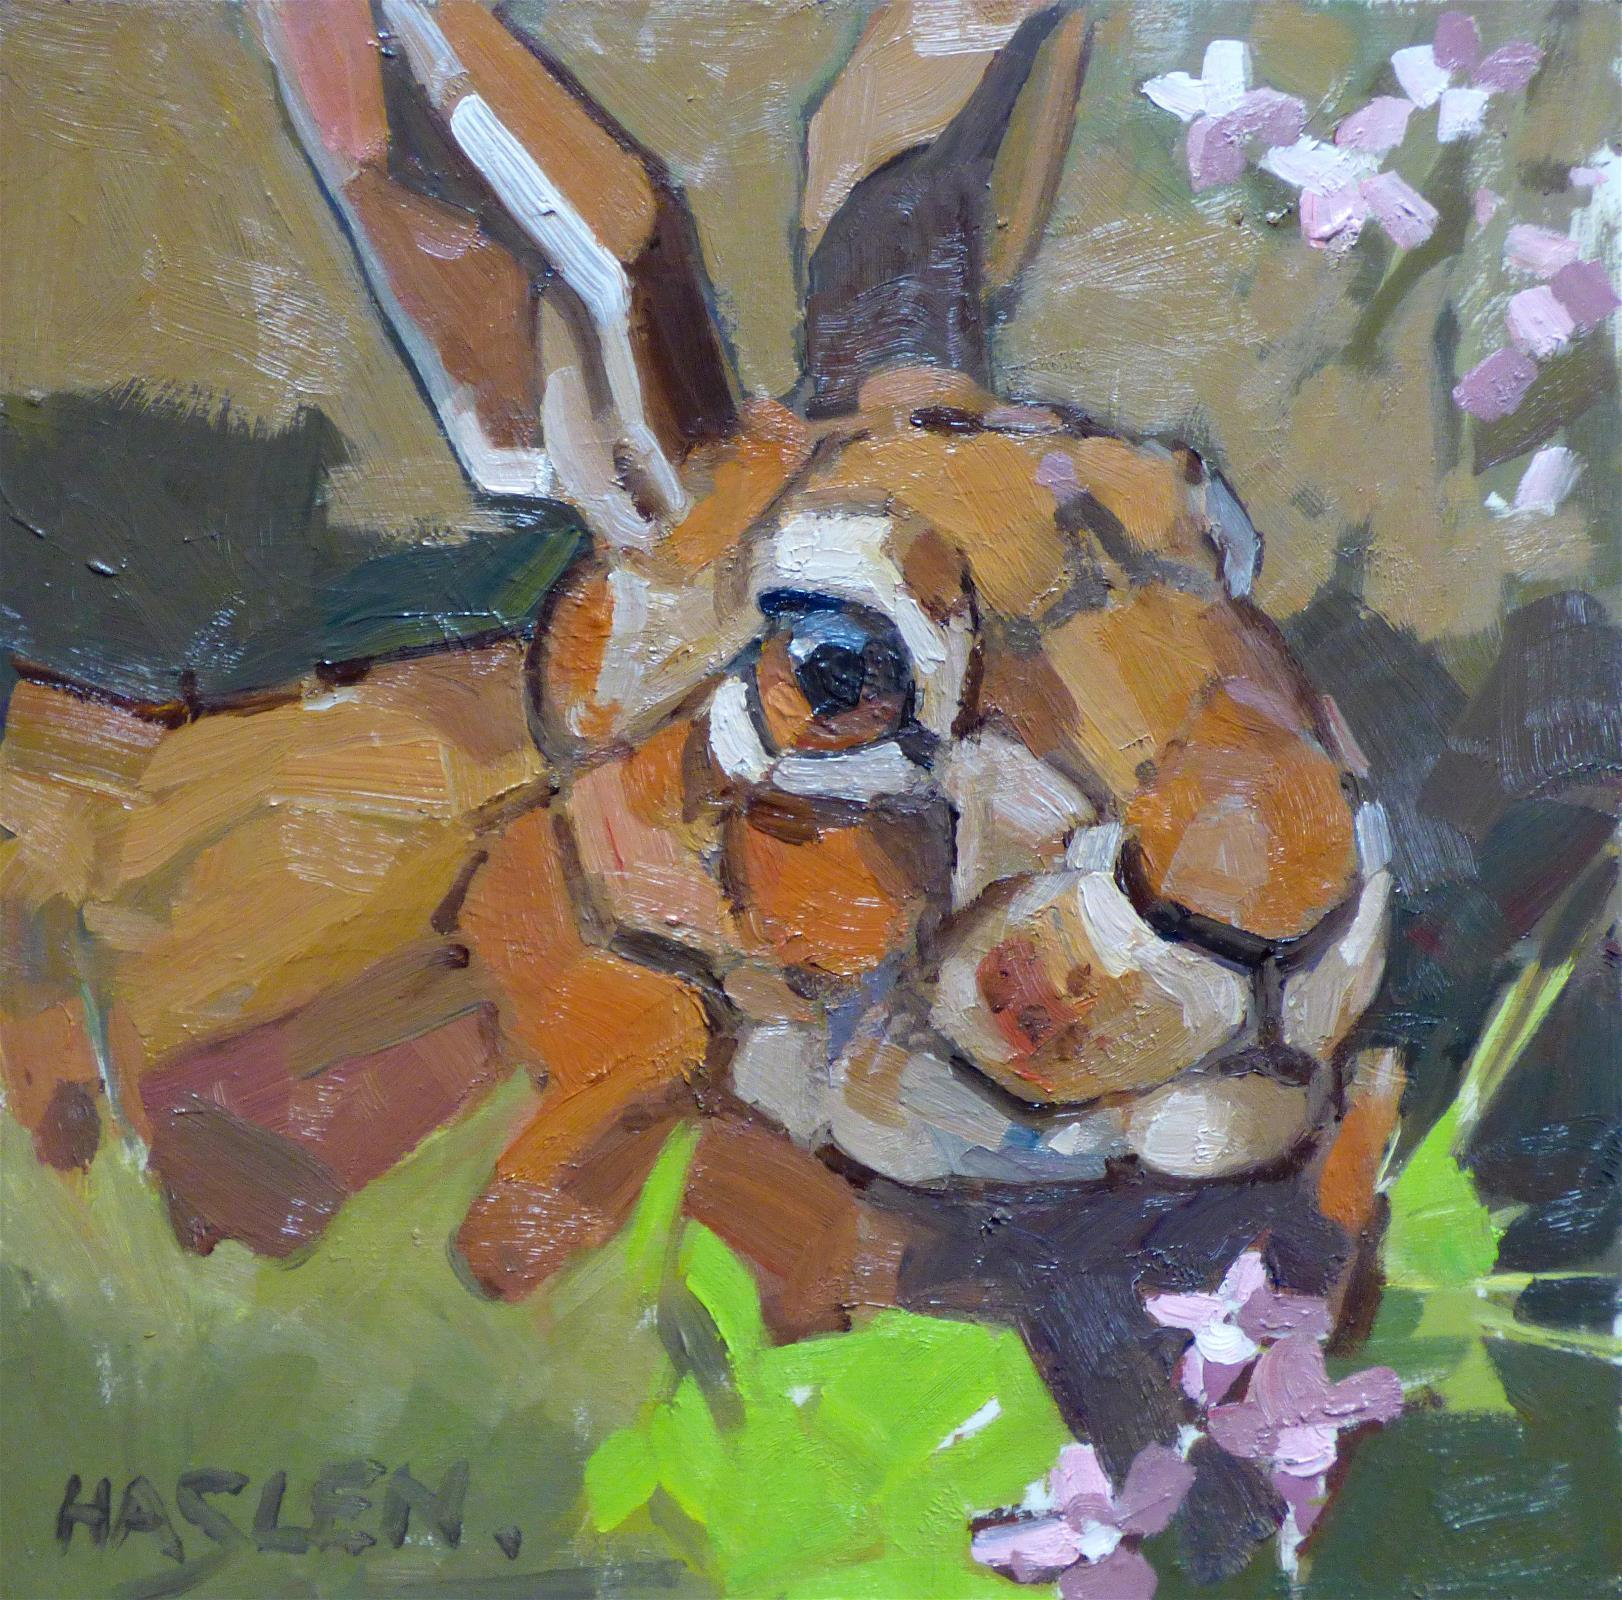 <p>Hare Portrait by Andrew Haslen</p>